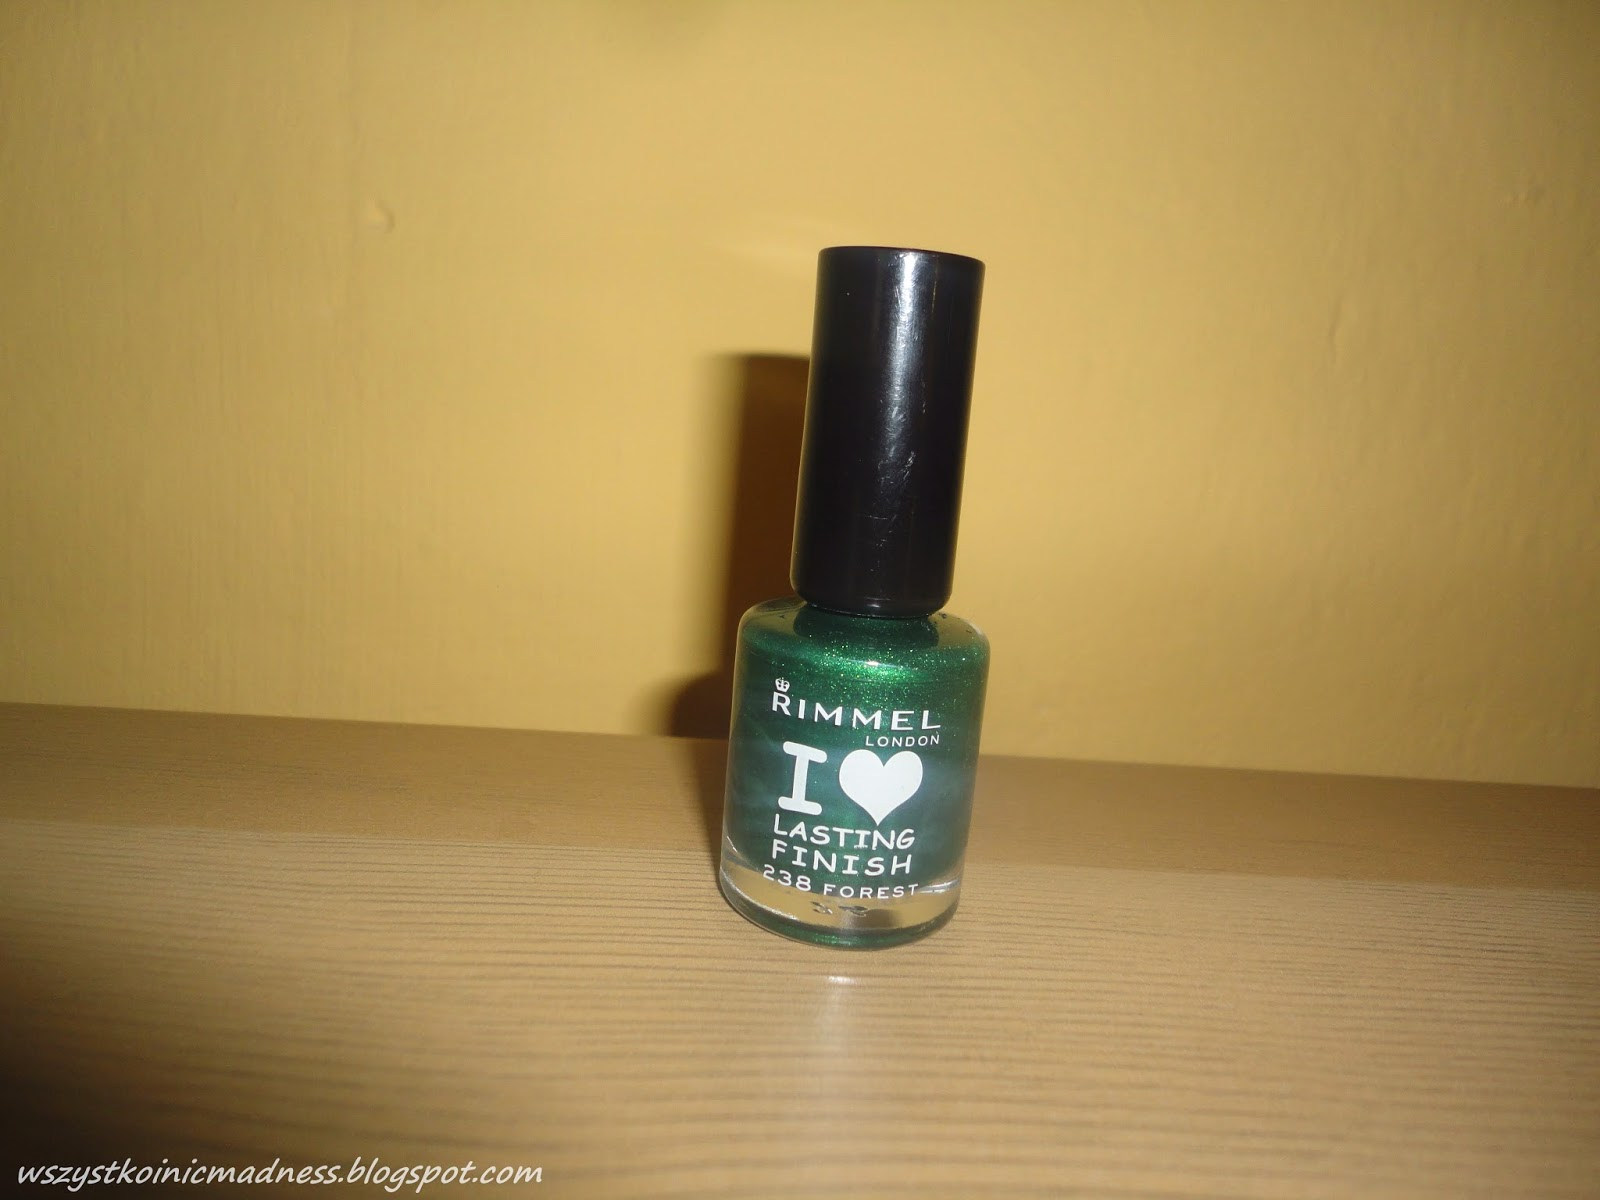 Rimmel lakier do paznokci i love lasting finish 238 forest.